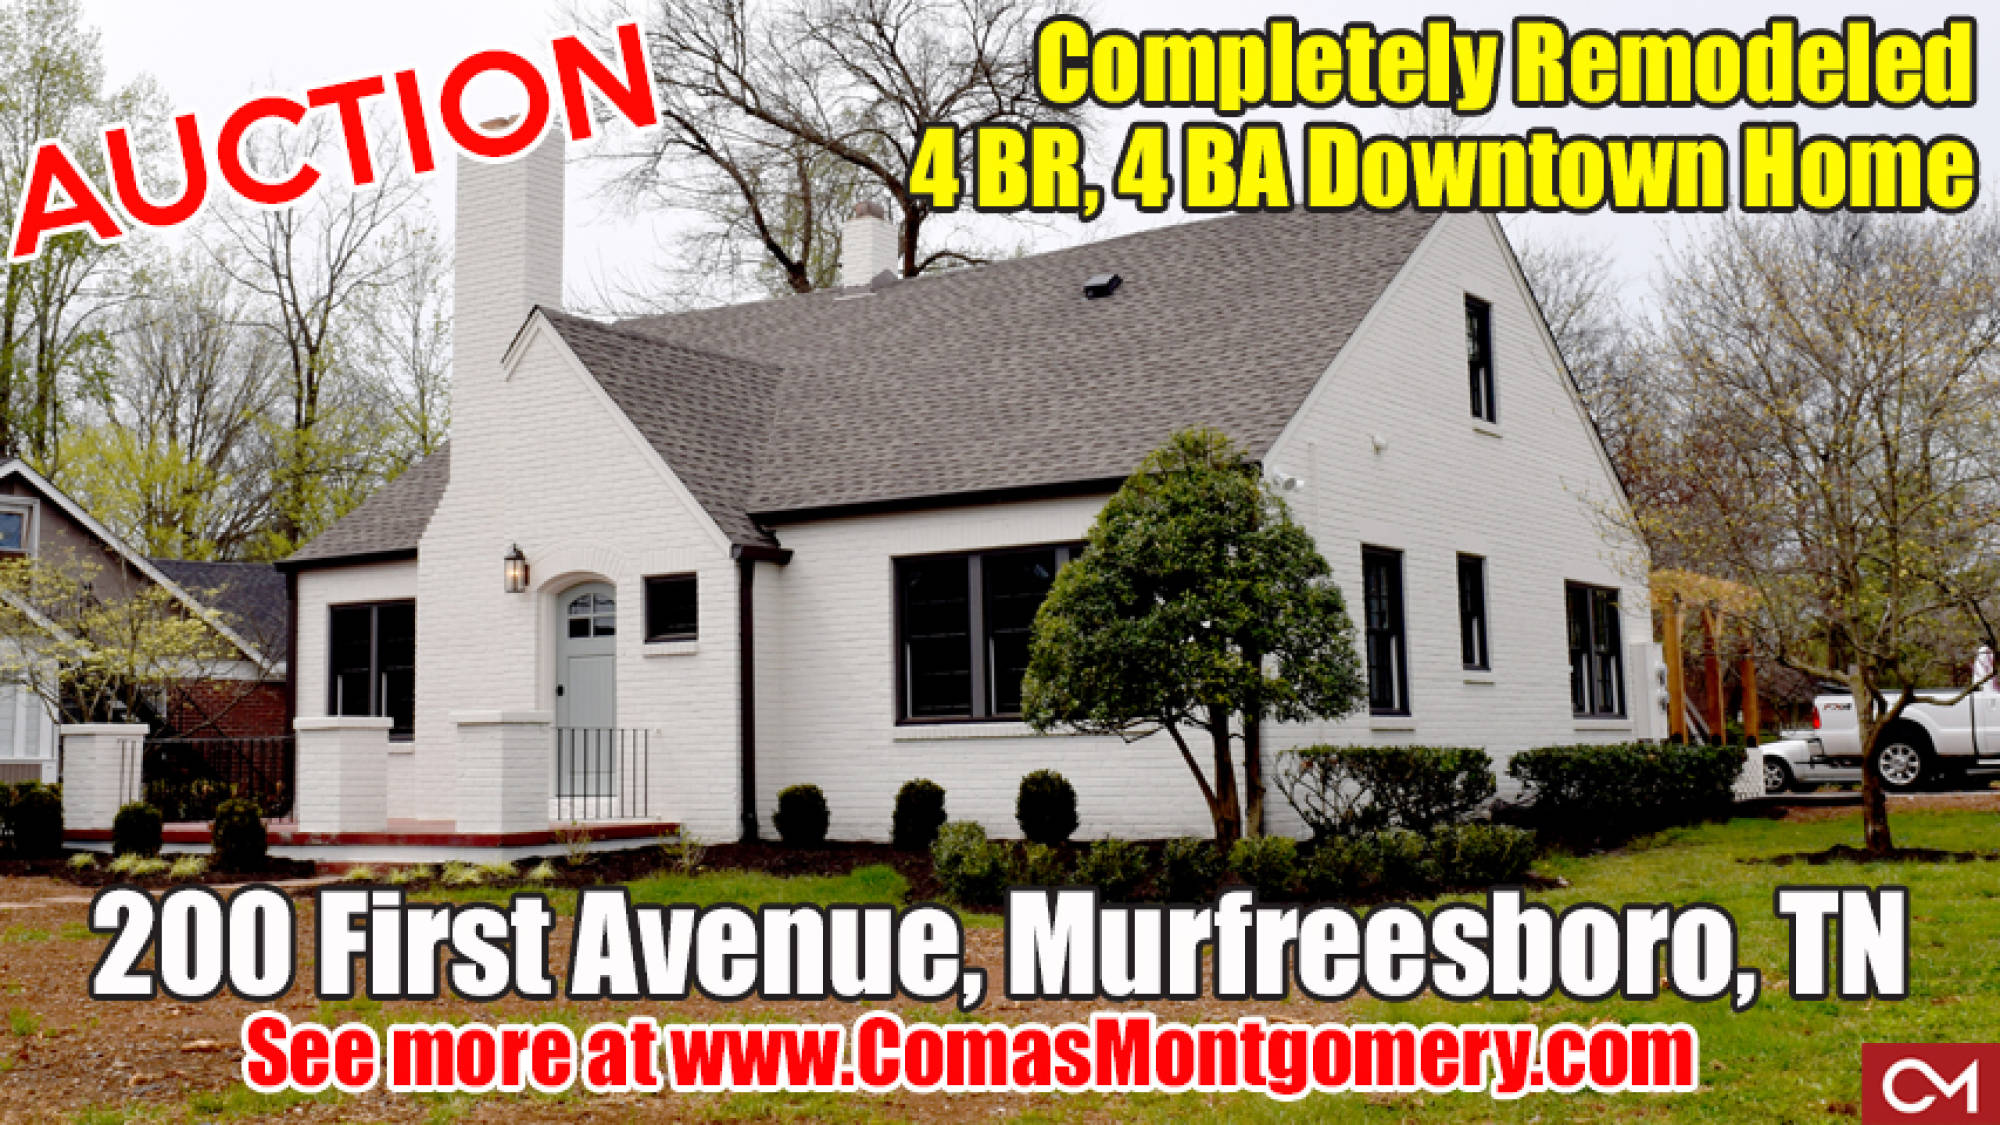 real estate, downtown, murfreesboro, remodeled, house, home, for sale, investment, apartment, square, comas, montgomery